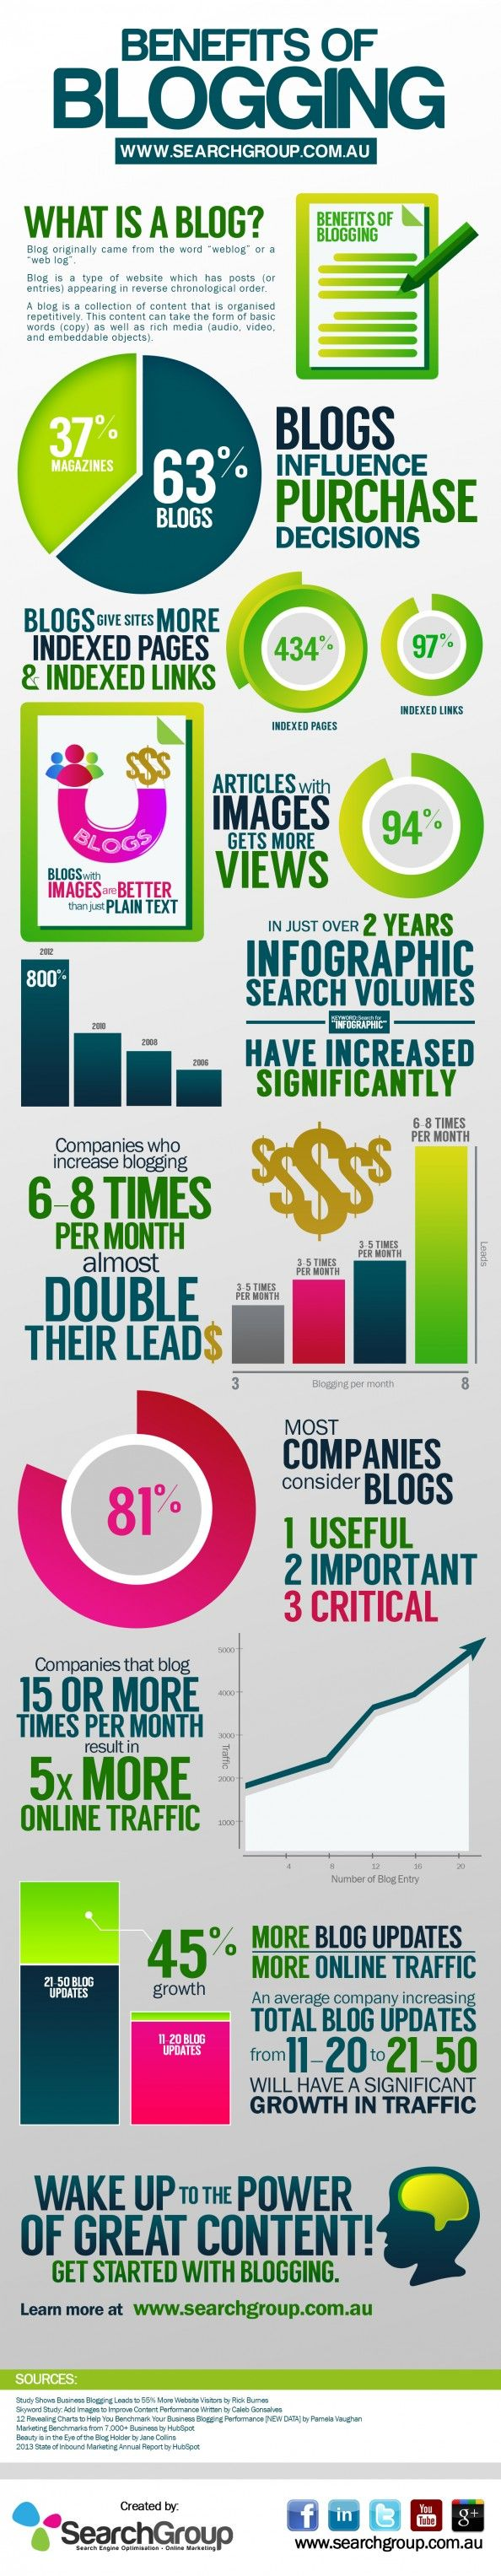 Benefits of blogging [infographic]